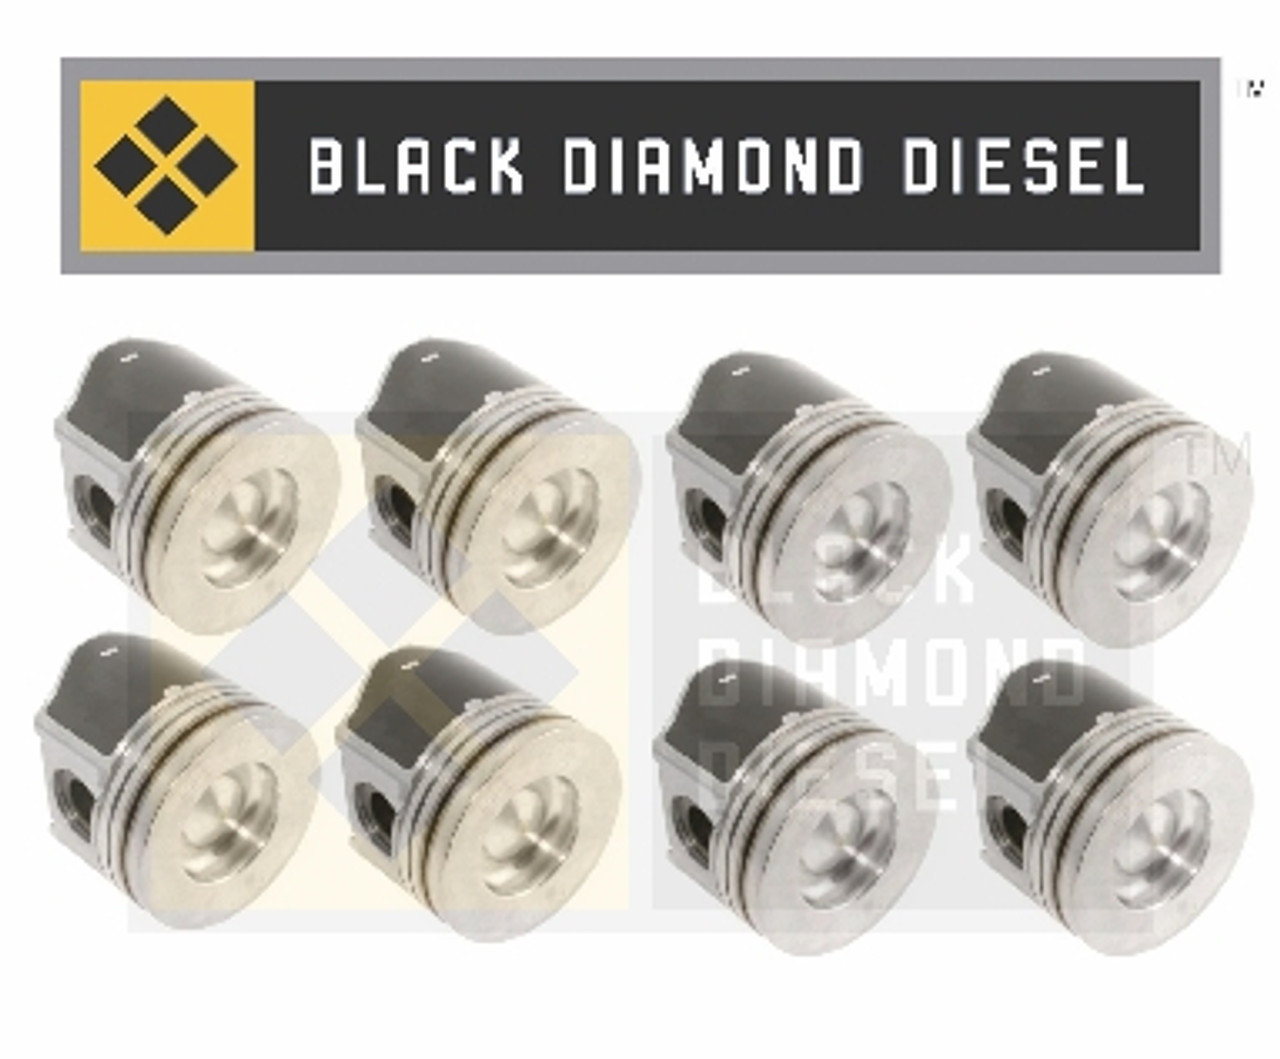 Black Diamond 6.4 Powerstroke Set of Replacement Pistons with Rings